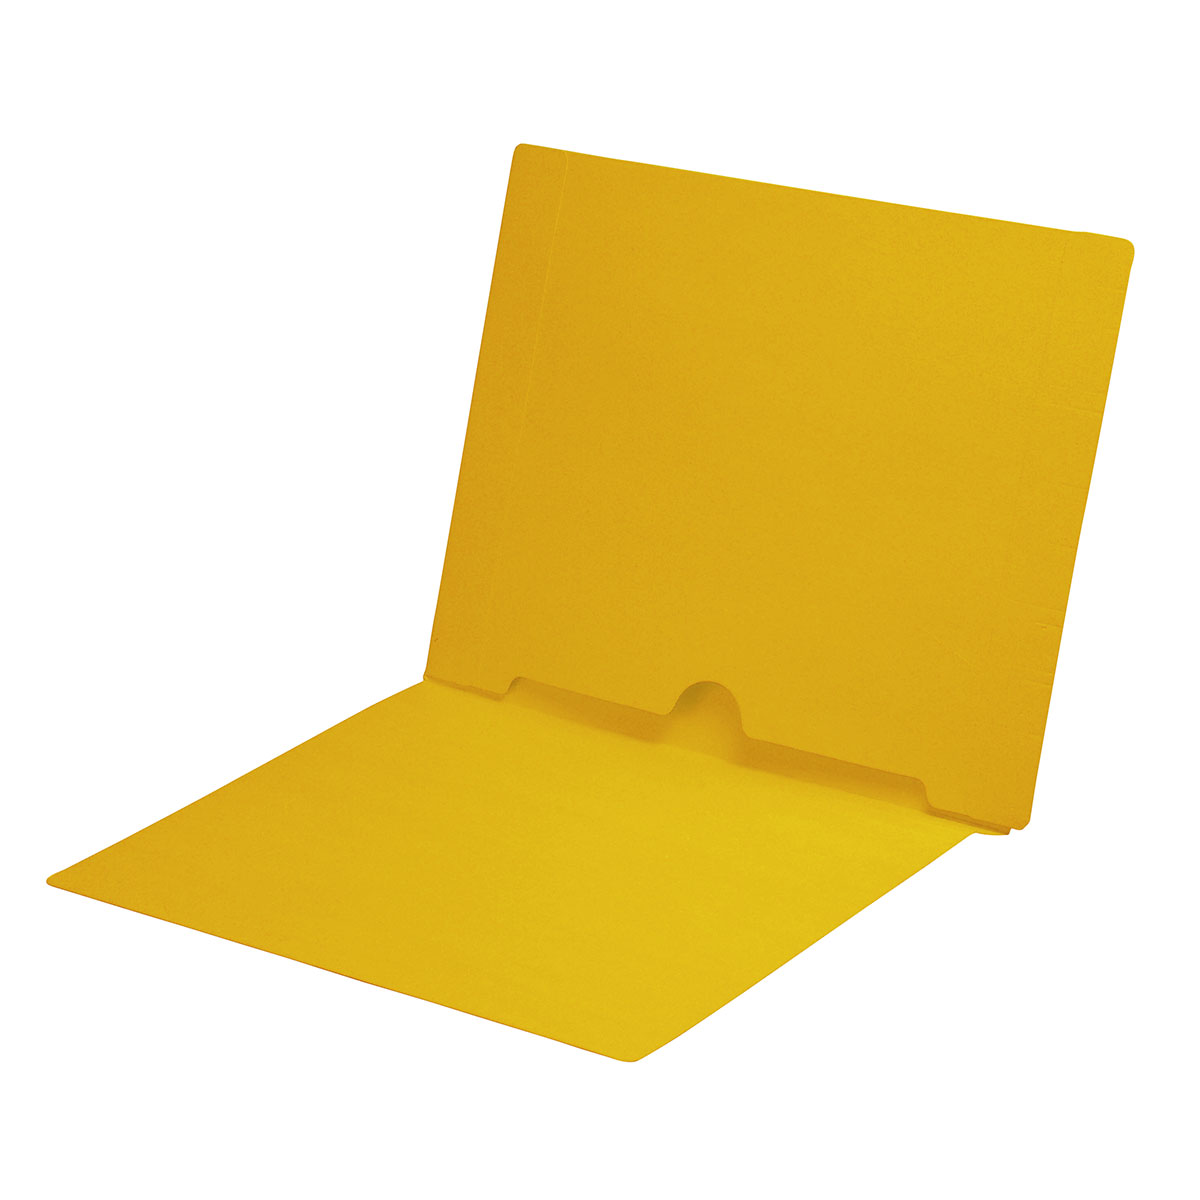 Yellow pocket folder